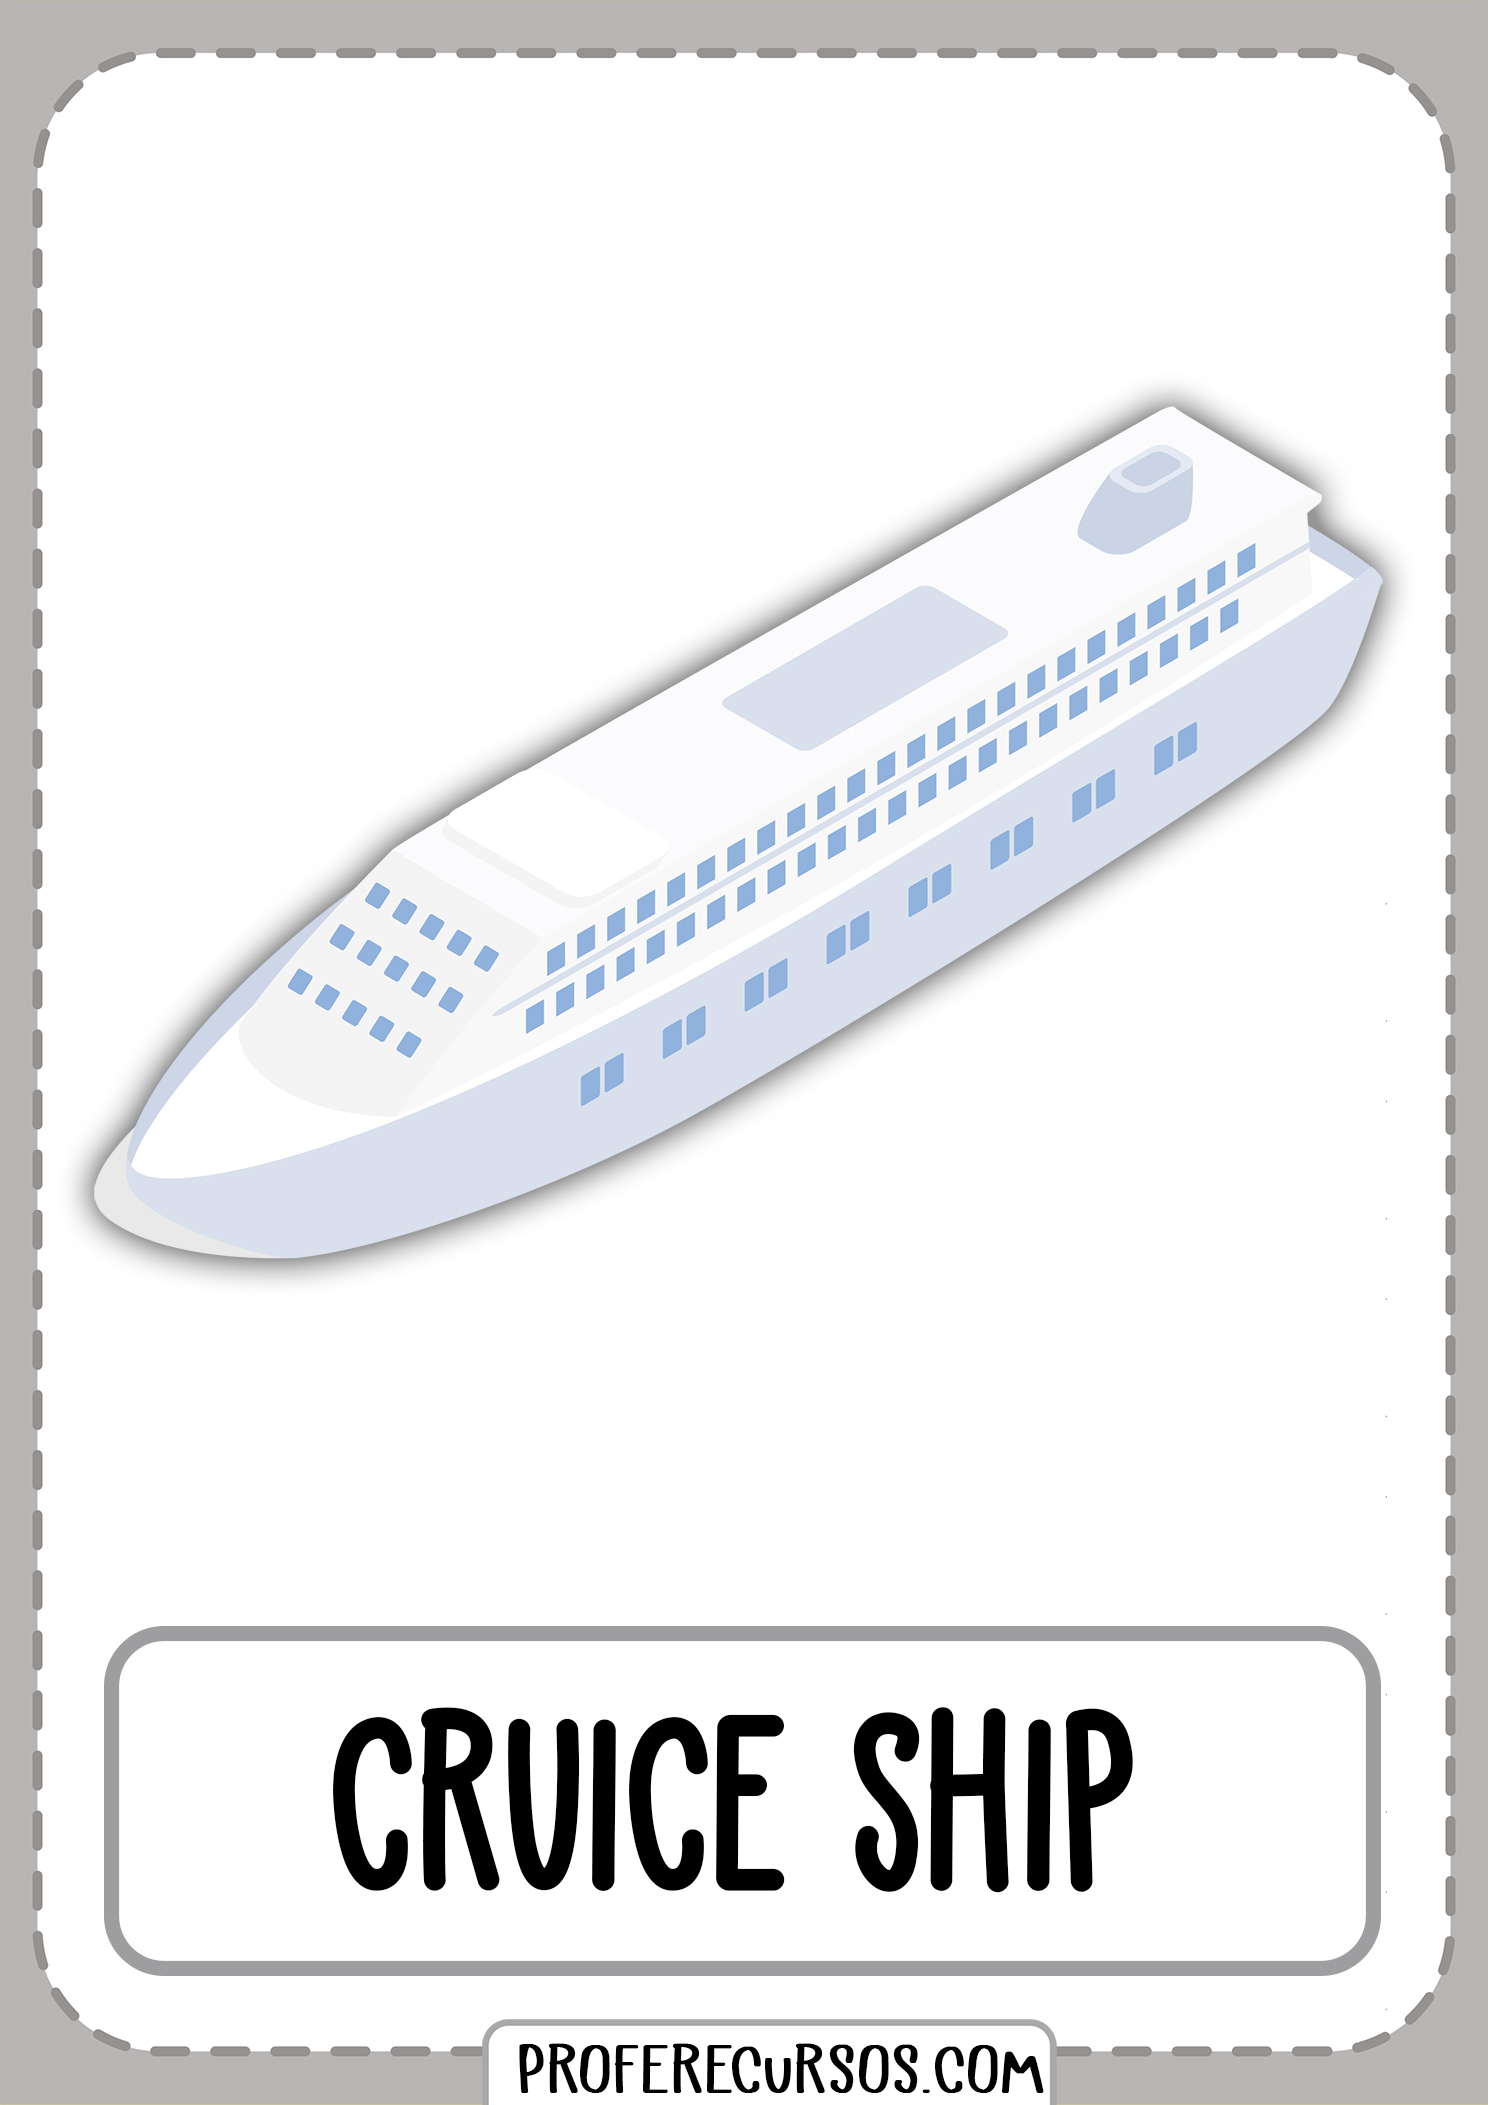 Means-of-transport-vocabulary-cruice-ship